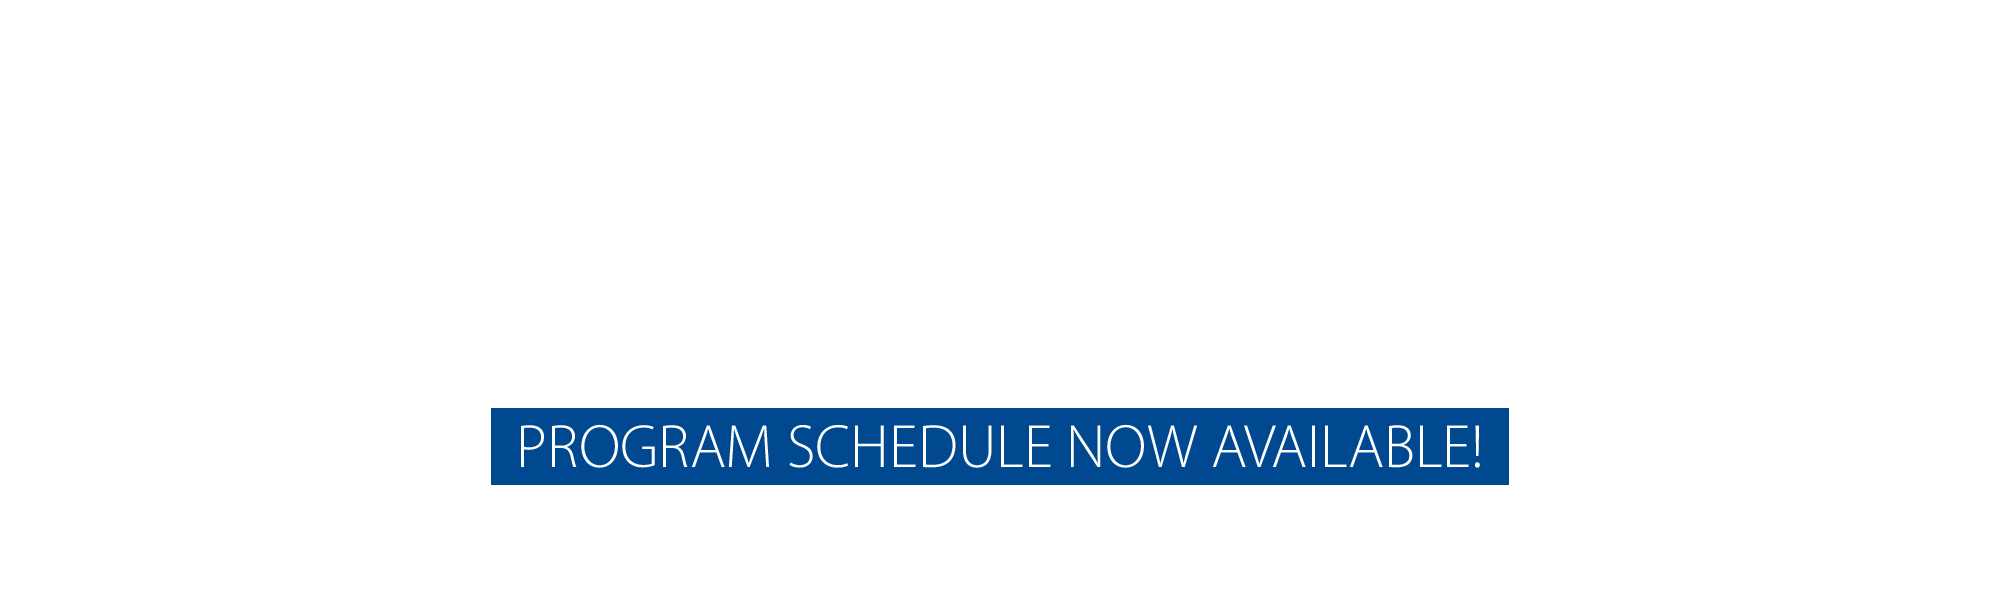 YMCA Virtual Fitness Classes Program Schedule Now Available